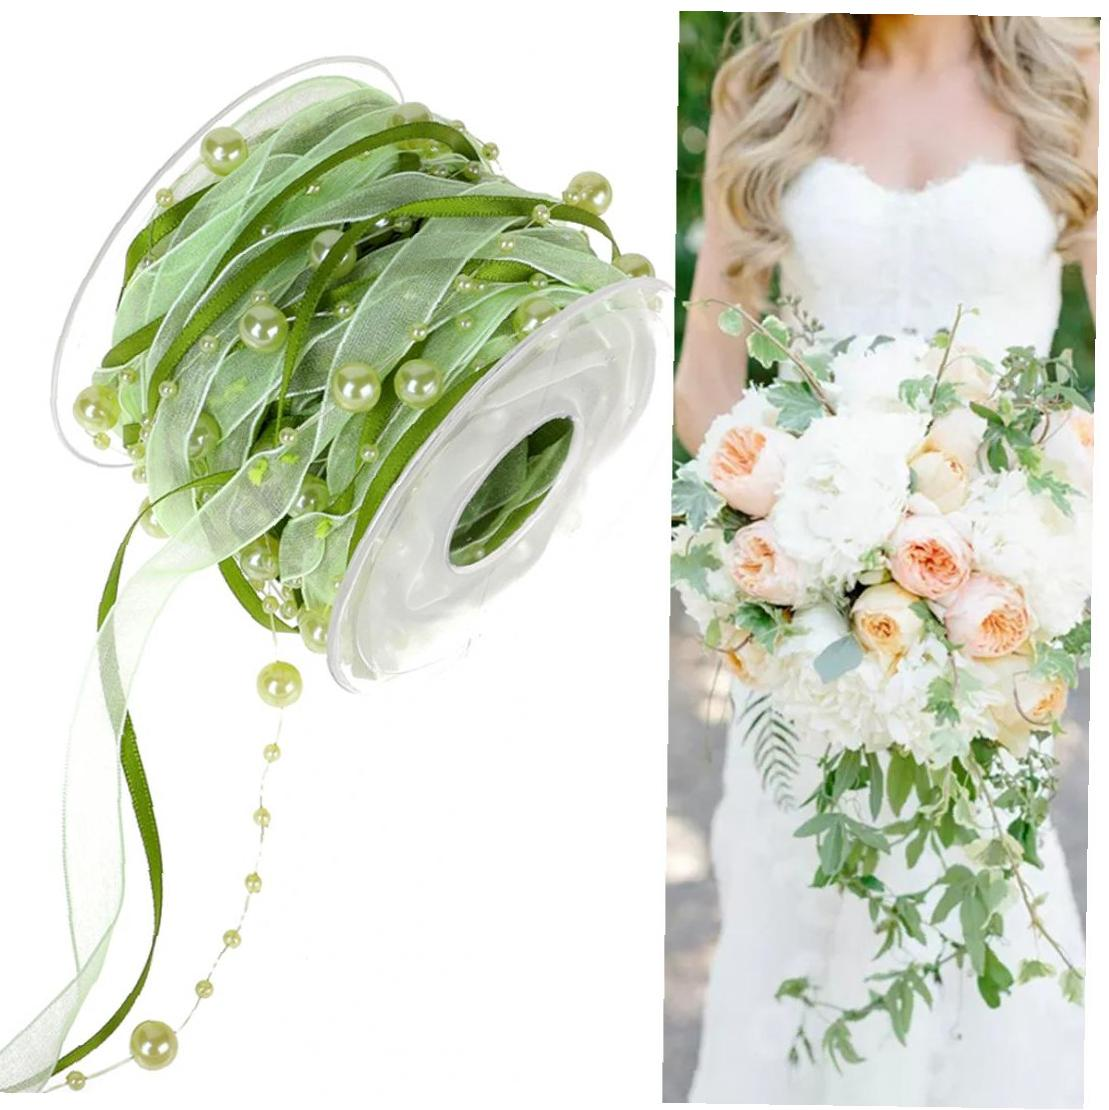 Pearl Beads Sheer Lace Trim Garland Mesh Ribbon Packing Accessory Ribbon For Wedding Decor Party DIY Craft 10m(Green) 1Roll